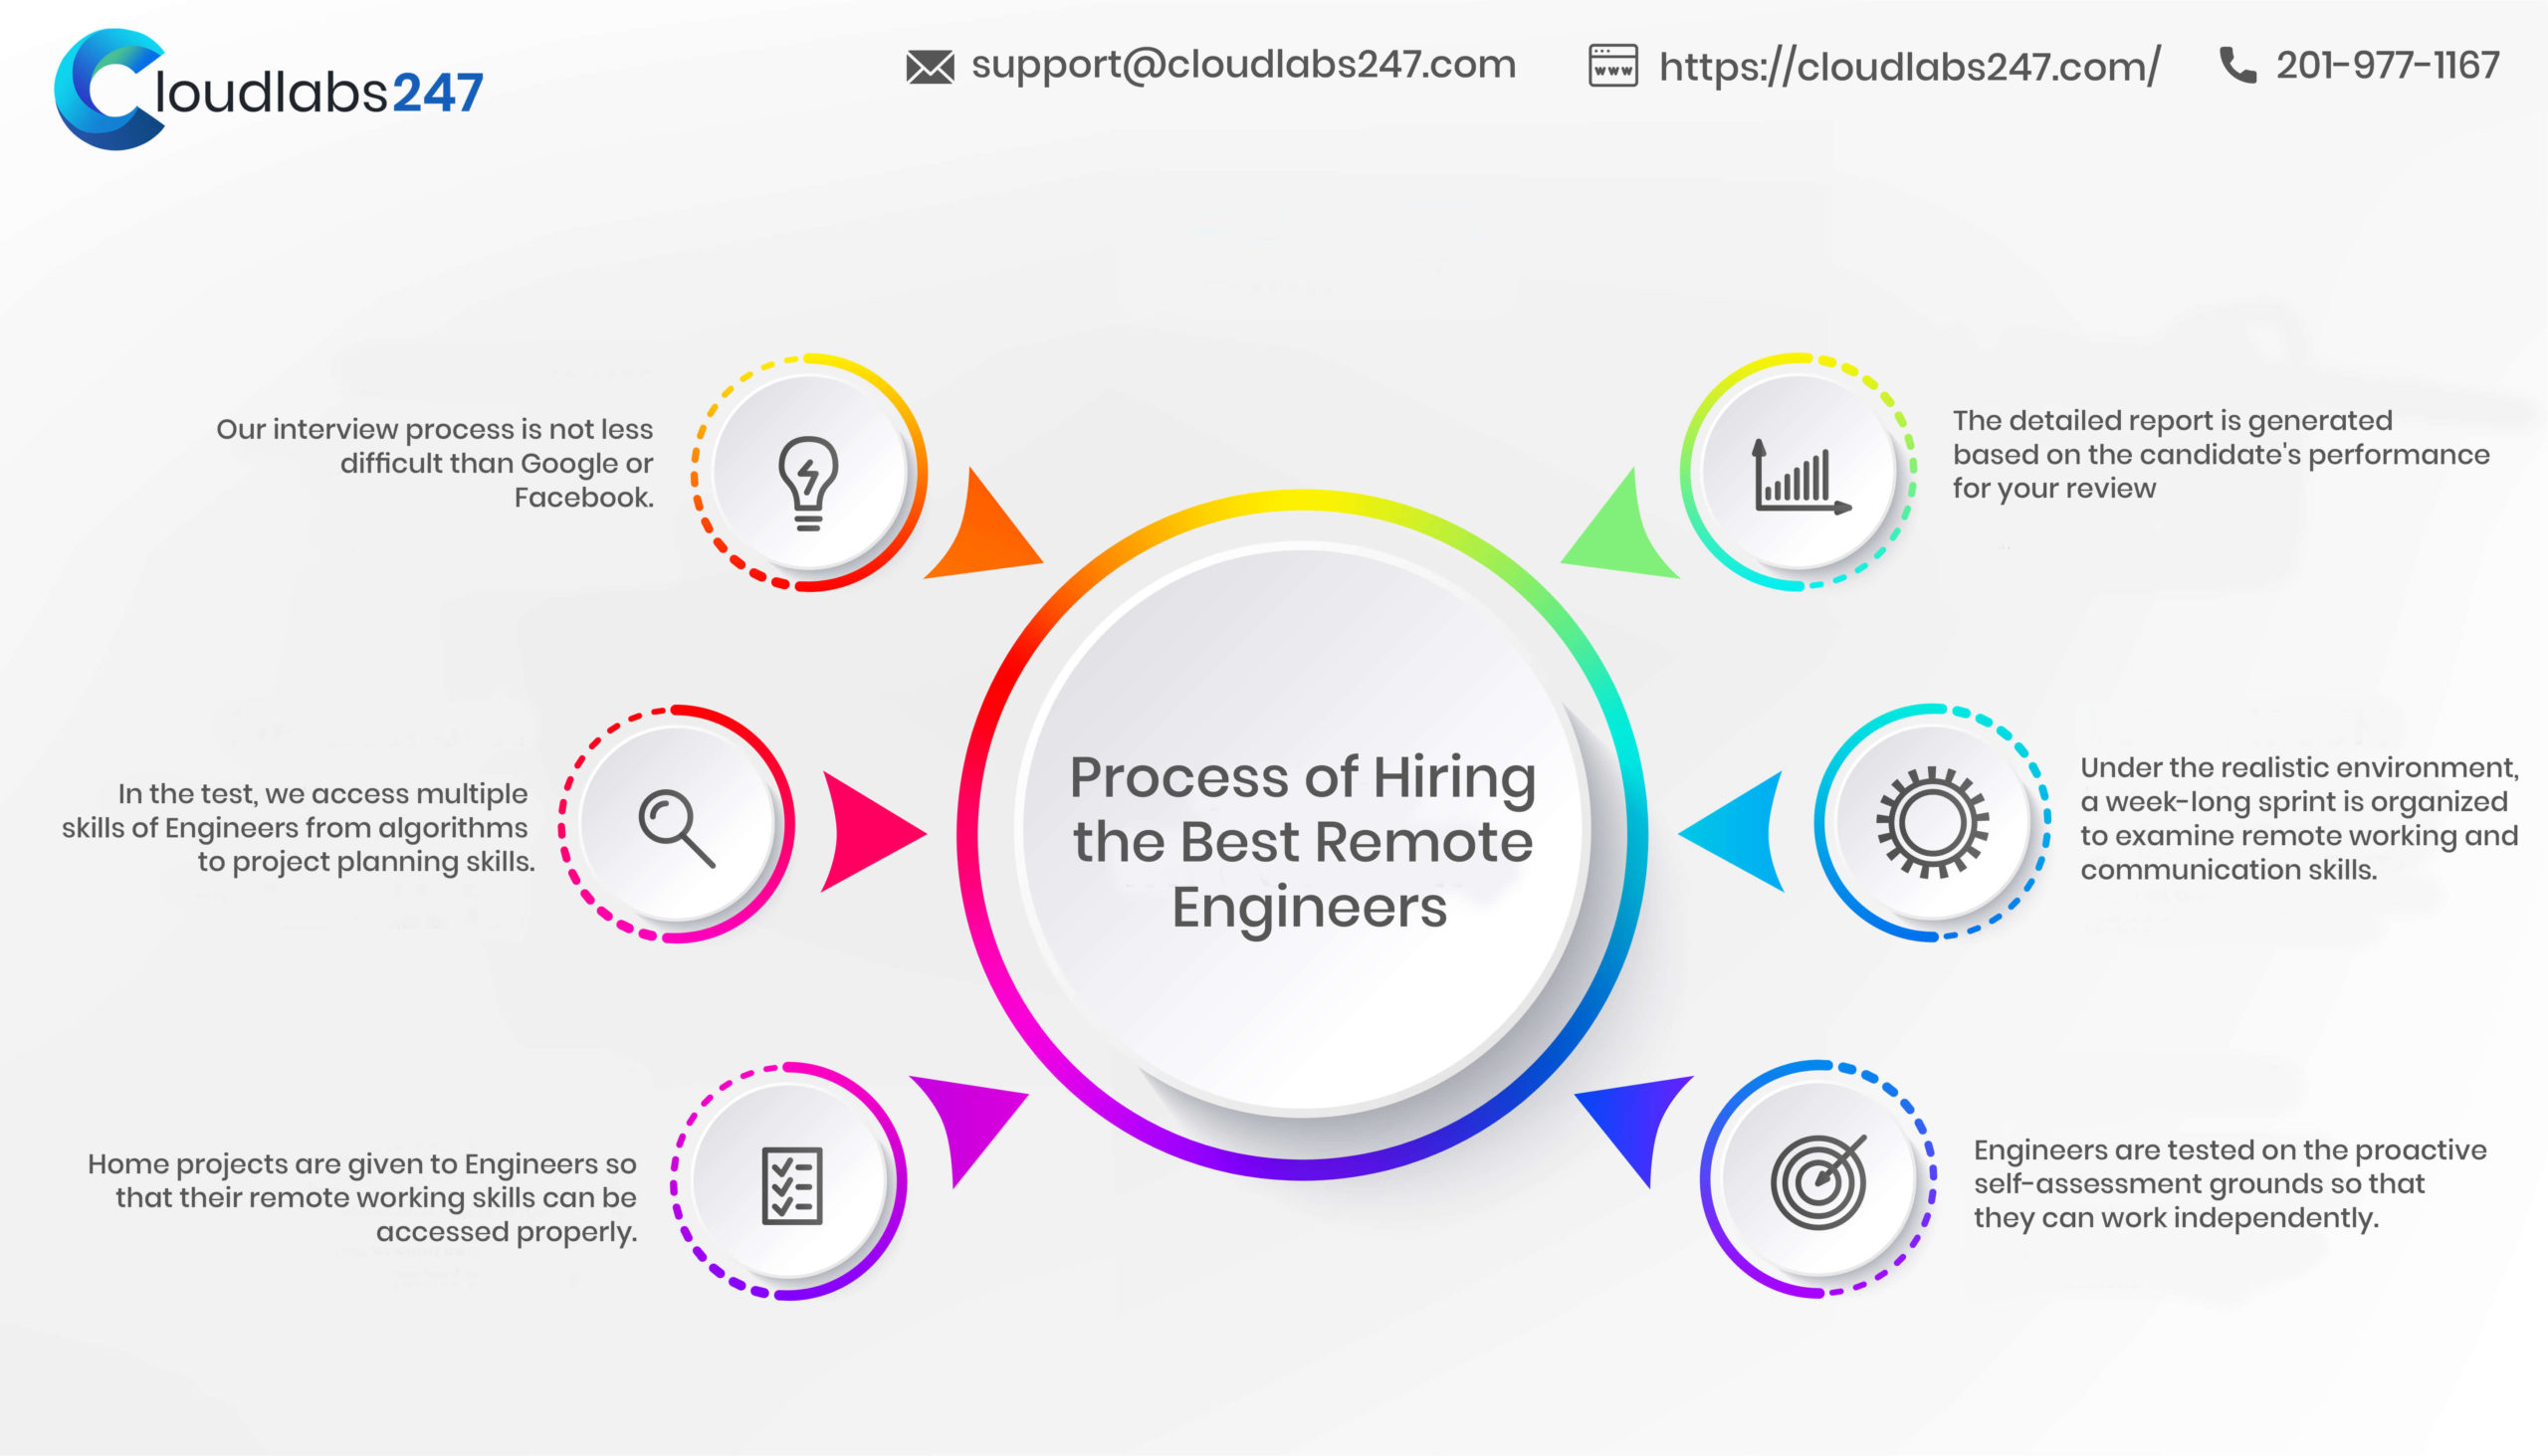 Process of Hiring the Best Remote Engineers